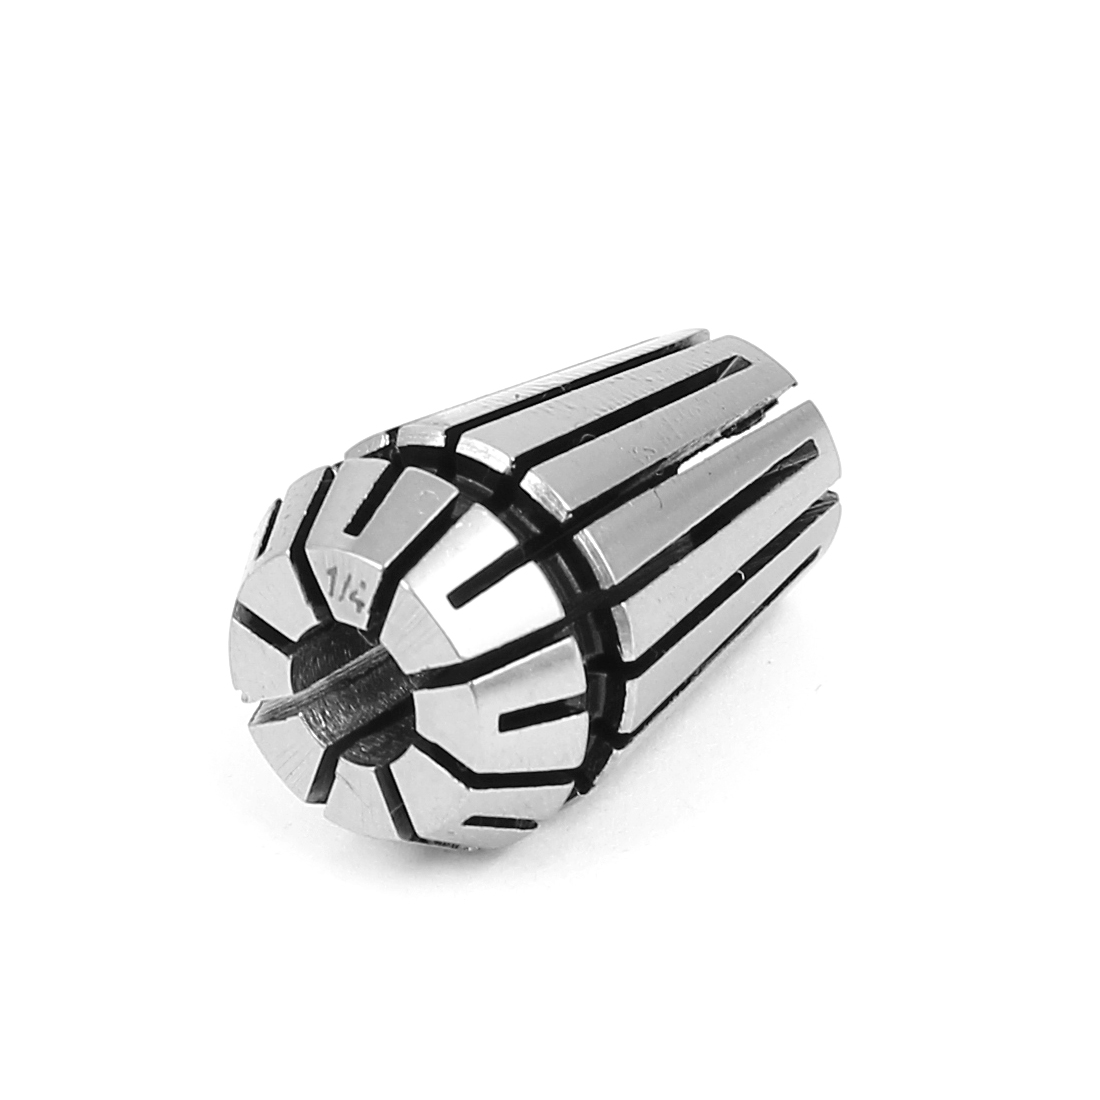 "ER16 1/4"" Clamping Dia CNC Engraving Milling Machine Spring Collet"